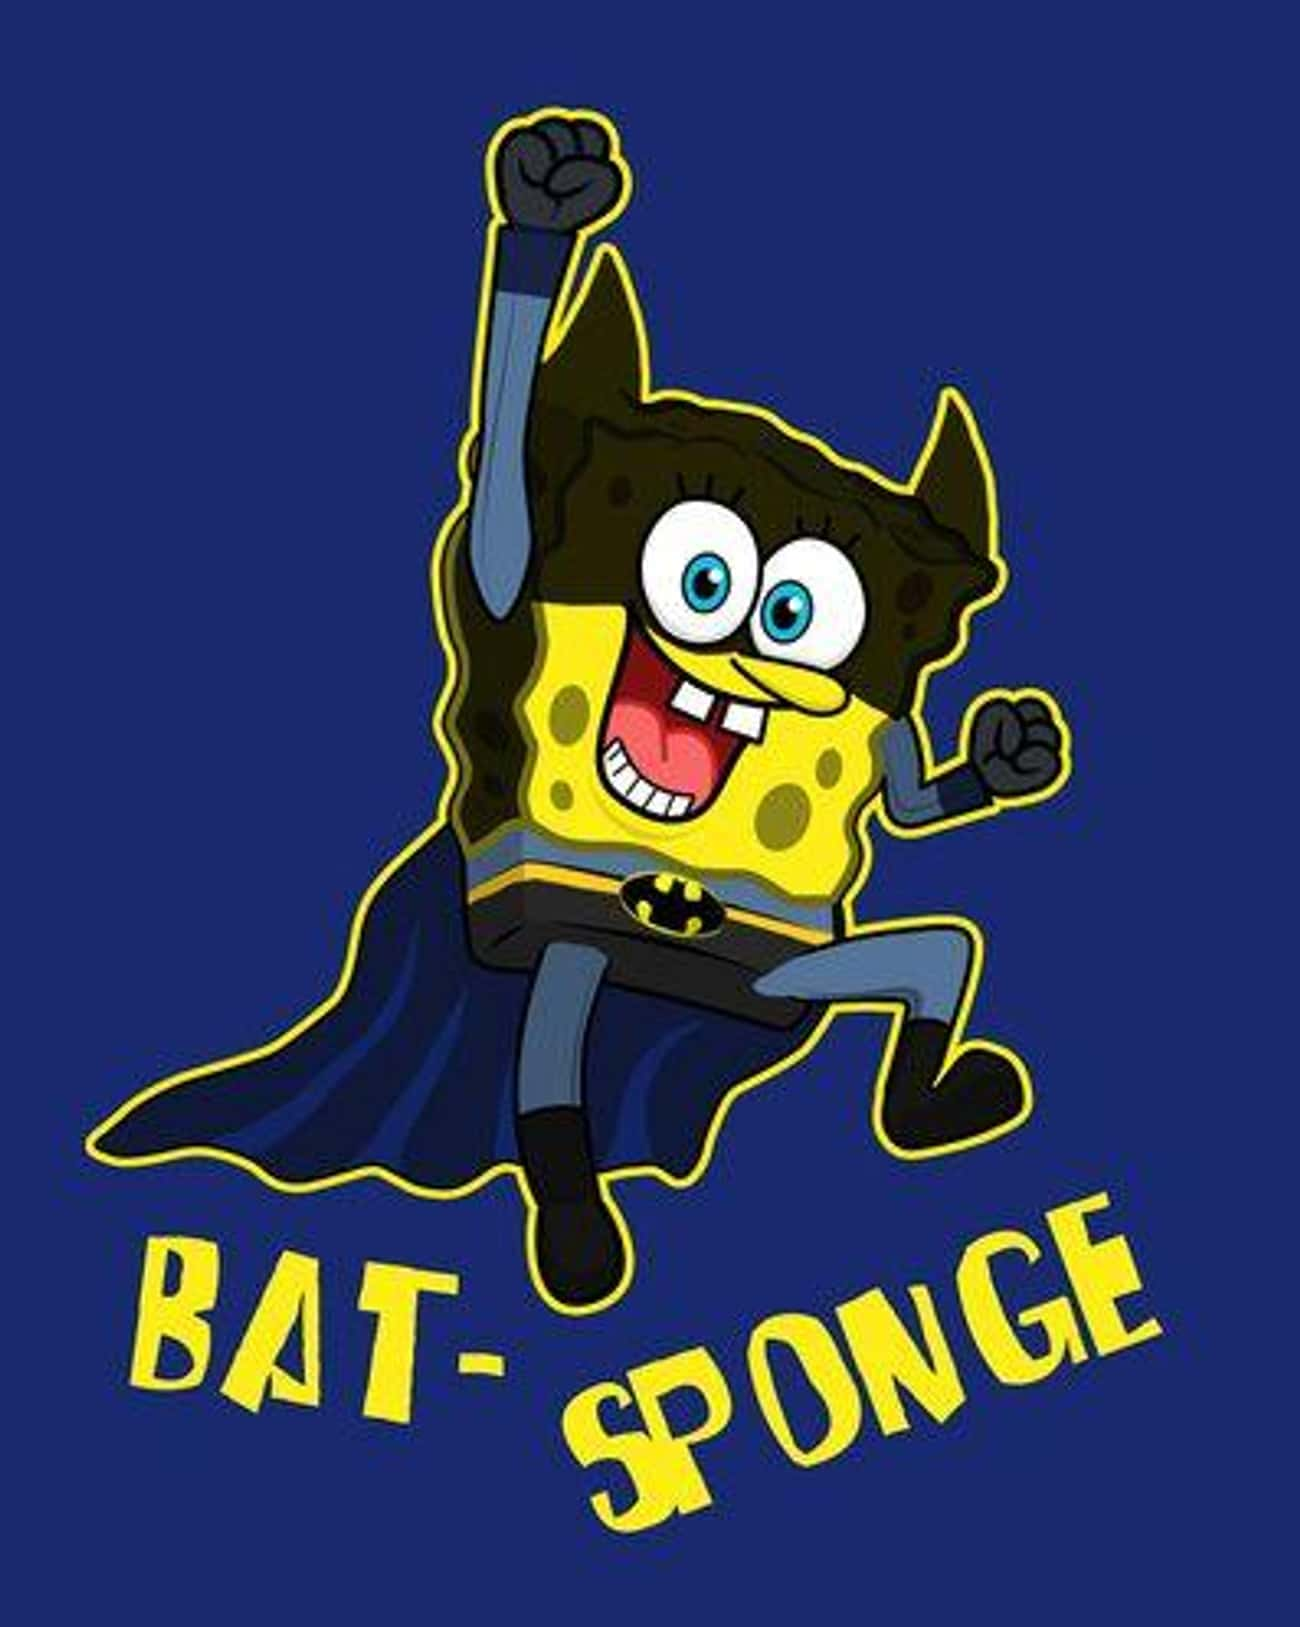 Bat-Sponge is listed (or ranked) 2 on the list 14 Times Animated Characters Dressed Up Like Batman